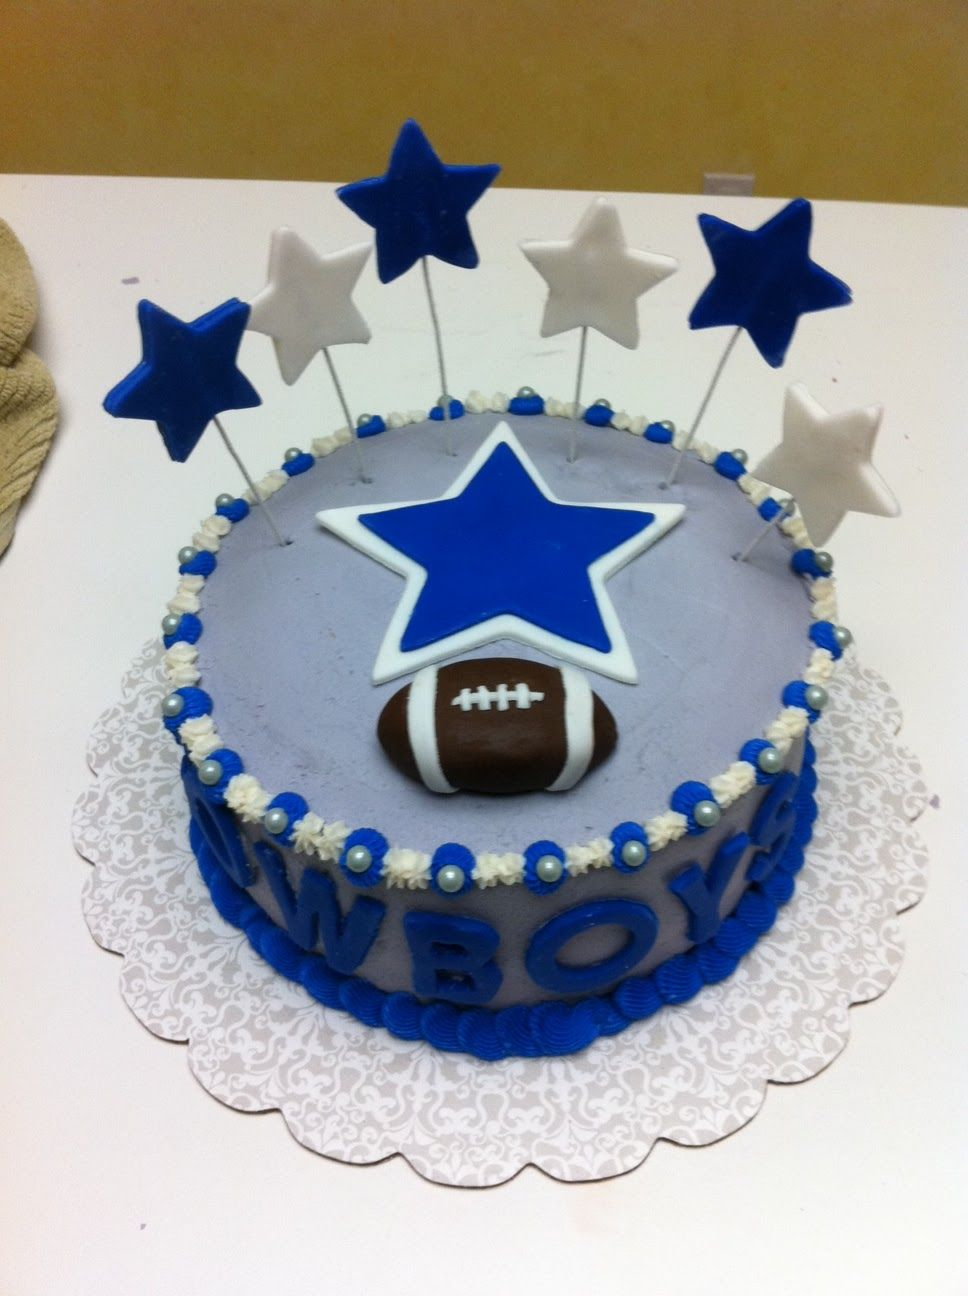 Dallas cowboys birthday cake ideas and designs - Cowboys Football Birthday Cakes Gingerly Created Confections Dallas Cowboys Cake